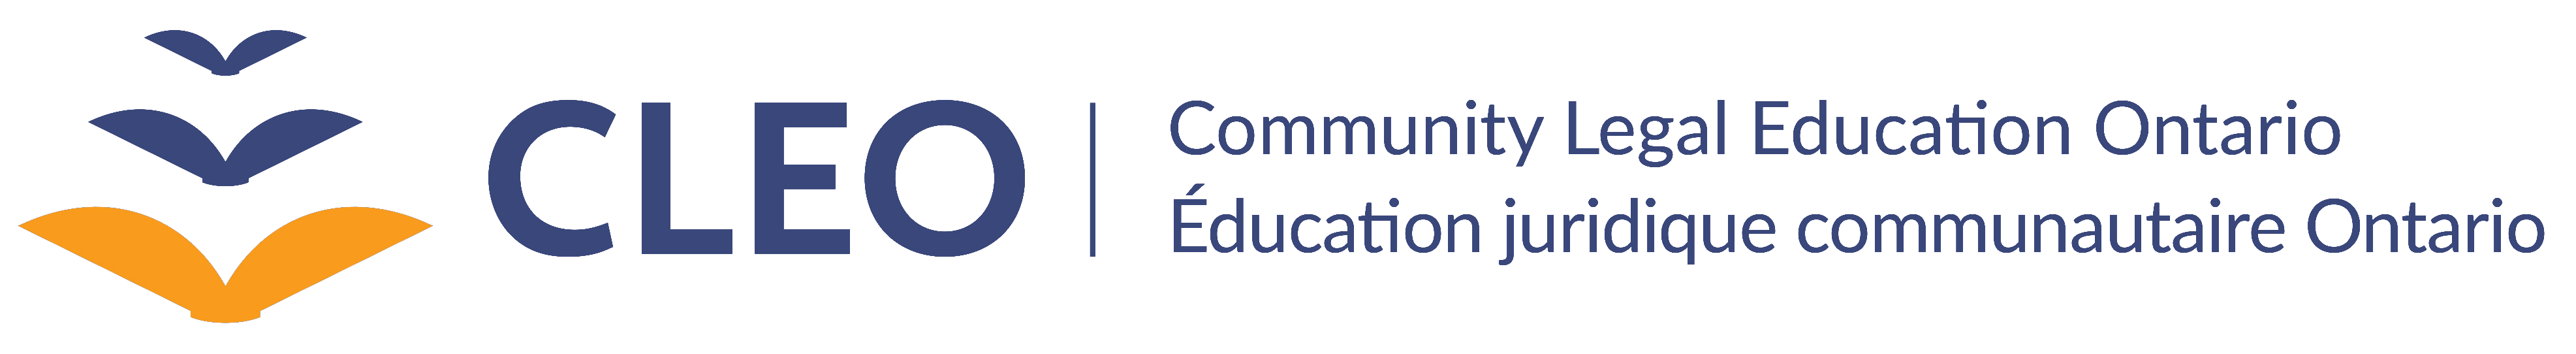 Community Legal Education Ontario